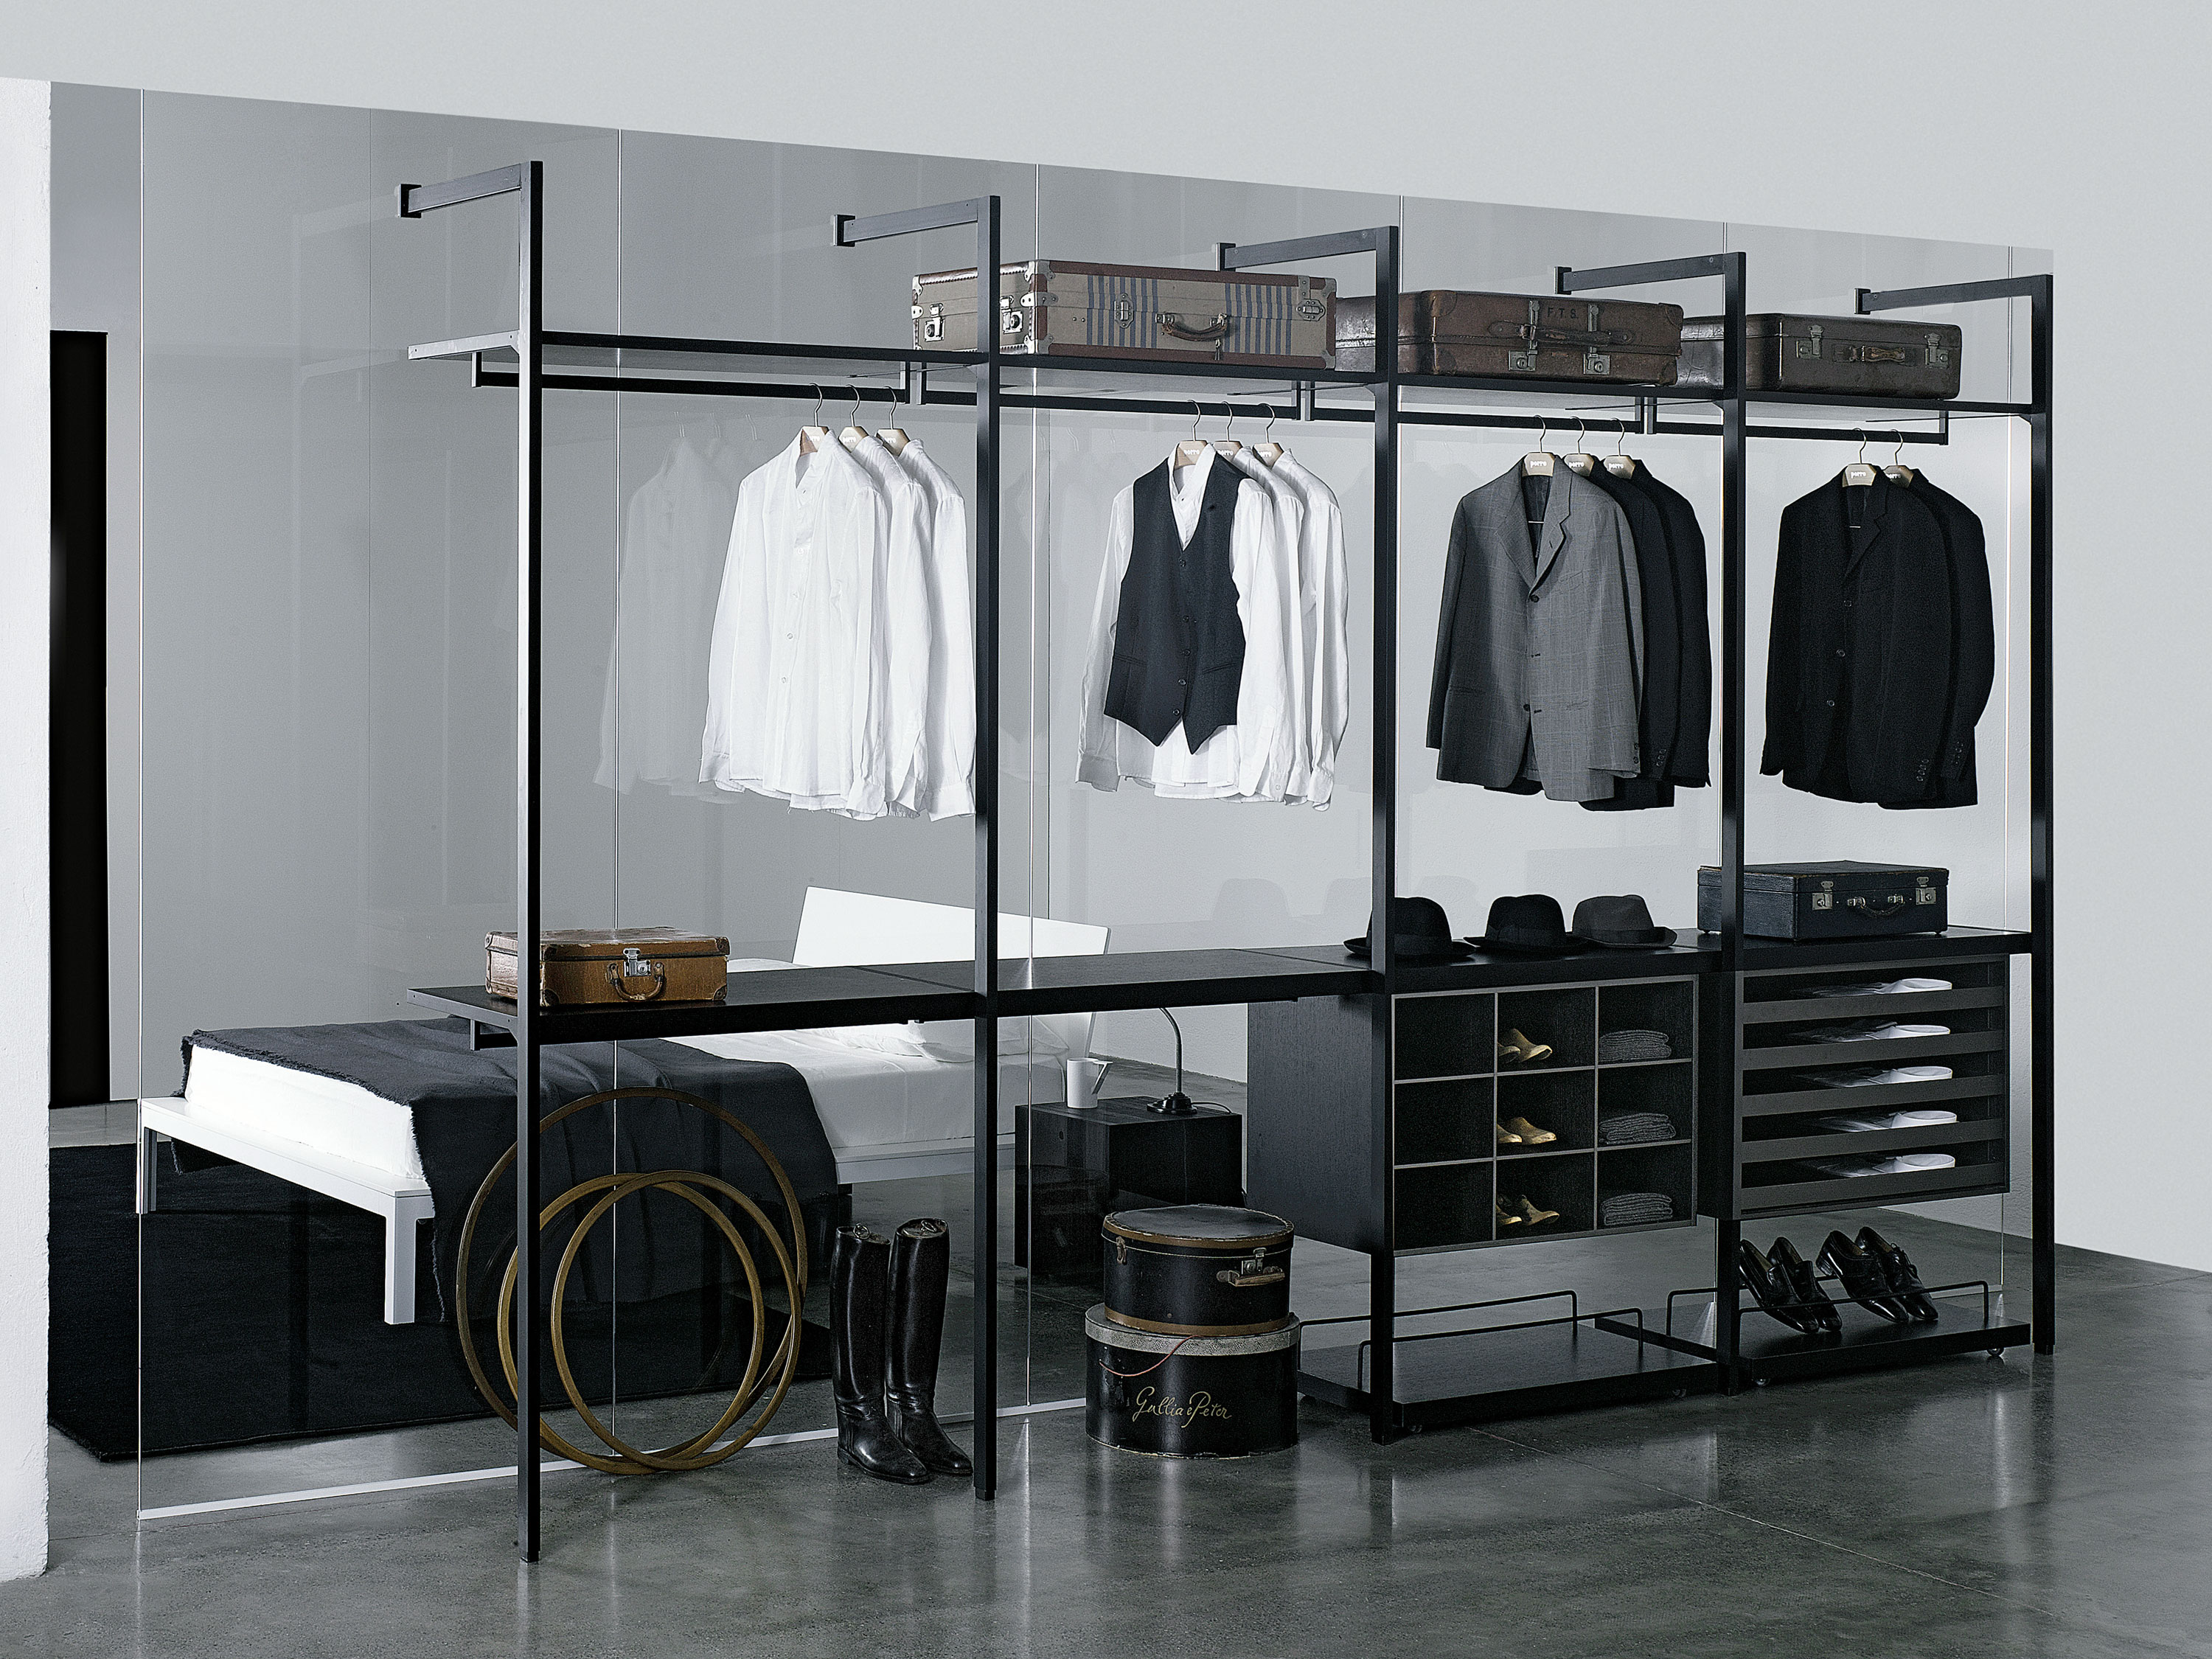 Walk In Closet Images porro spa | products | systems | cabina armadio / walk-in closet